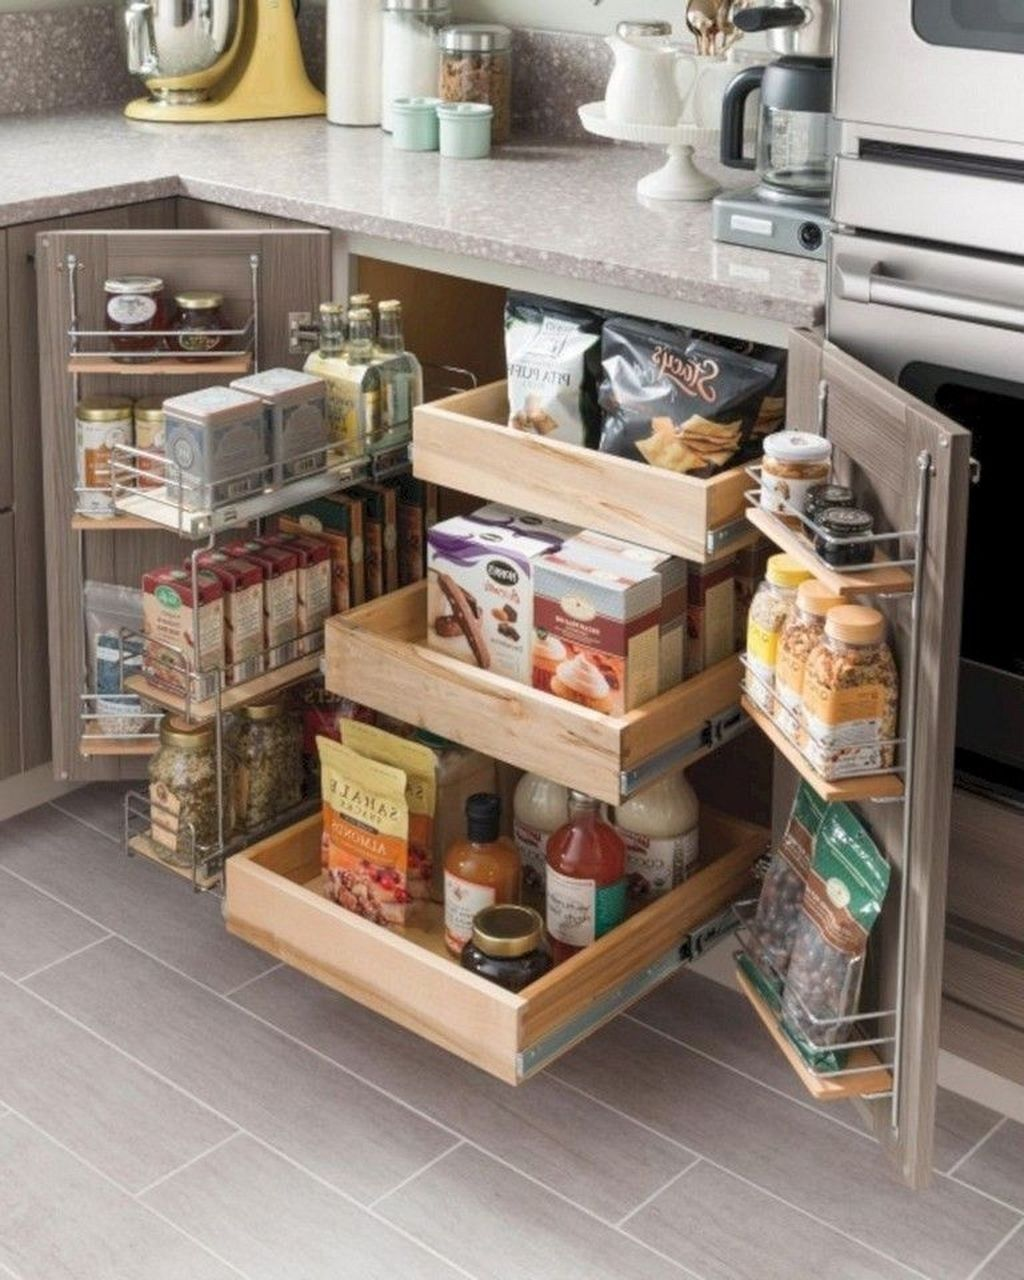 30 Luxury Kitchen Storage Ideas To Save Your Space Small Kitchen Storage Kitchen Cabinet Organization Layout Kitchen Remodel Small